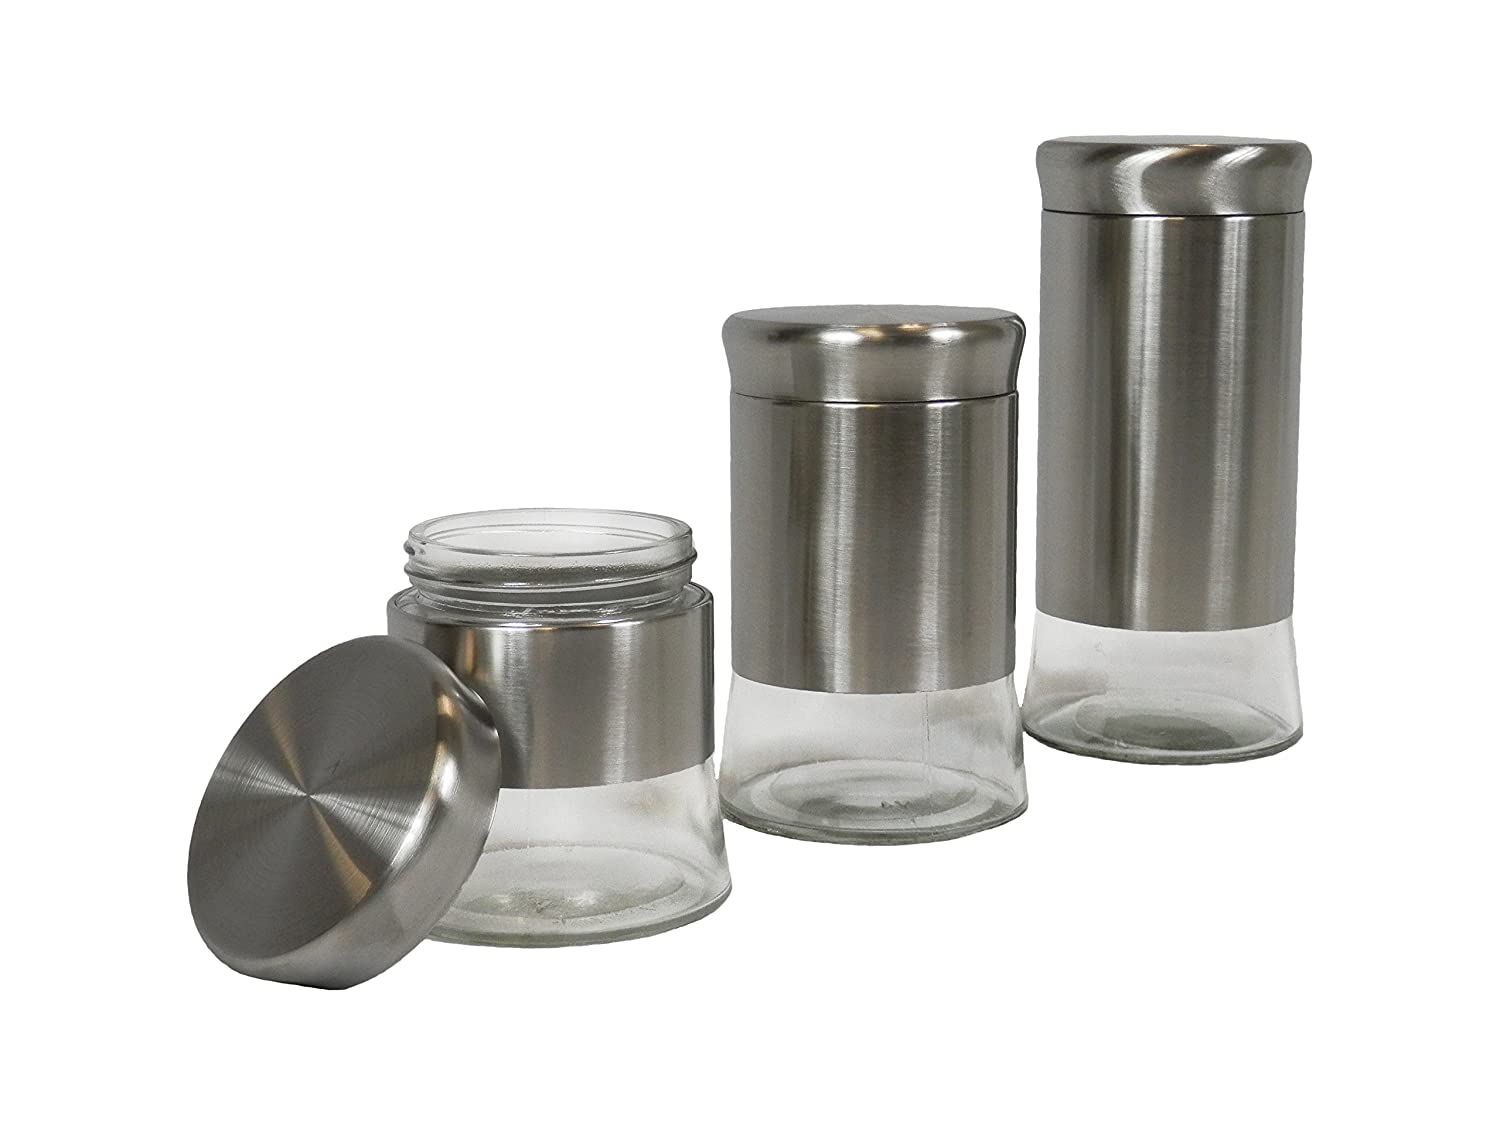 amazon com chefventions 3 piece sturdy food storage canisters set amazon com chefventions 3 piece sturdy food storage canisters set with tight seal stylish clear glass and stainless steel kitchen containers for coffee